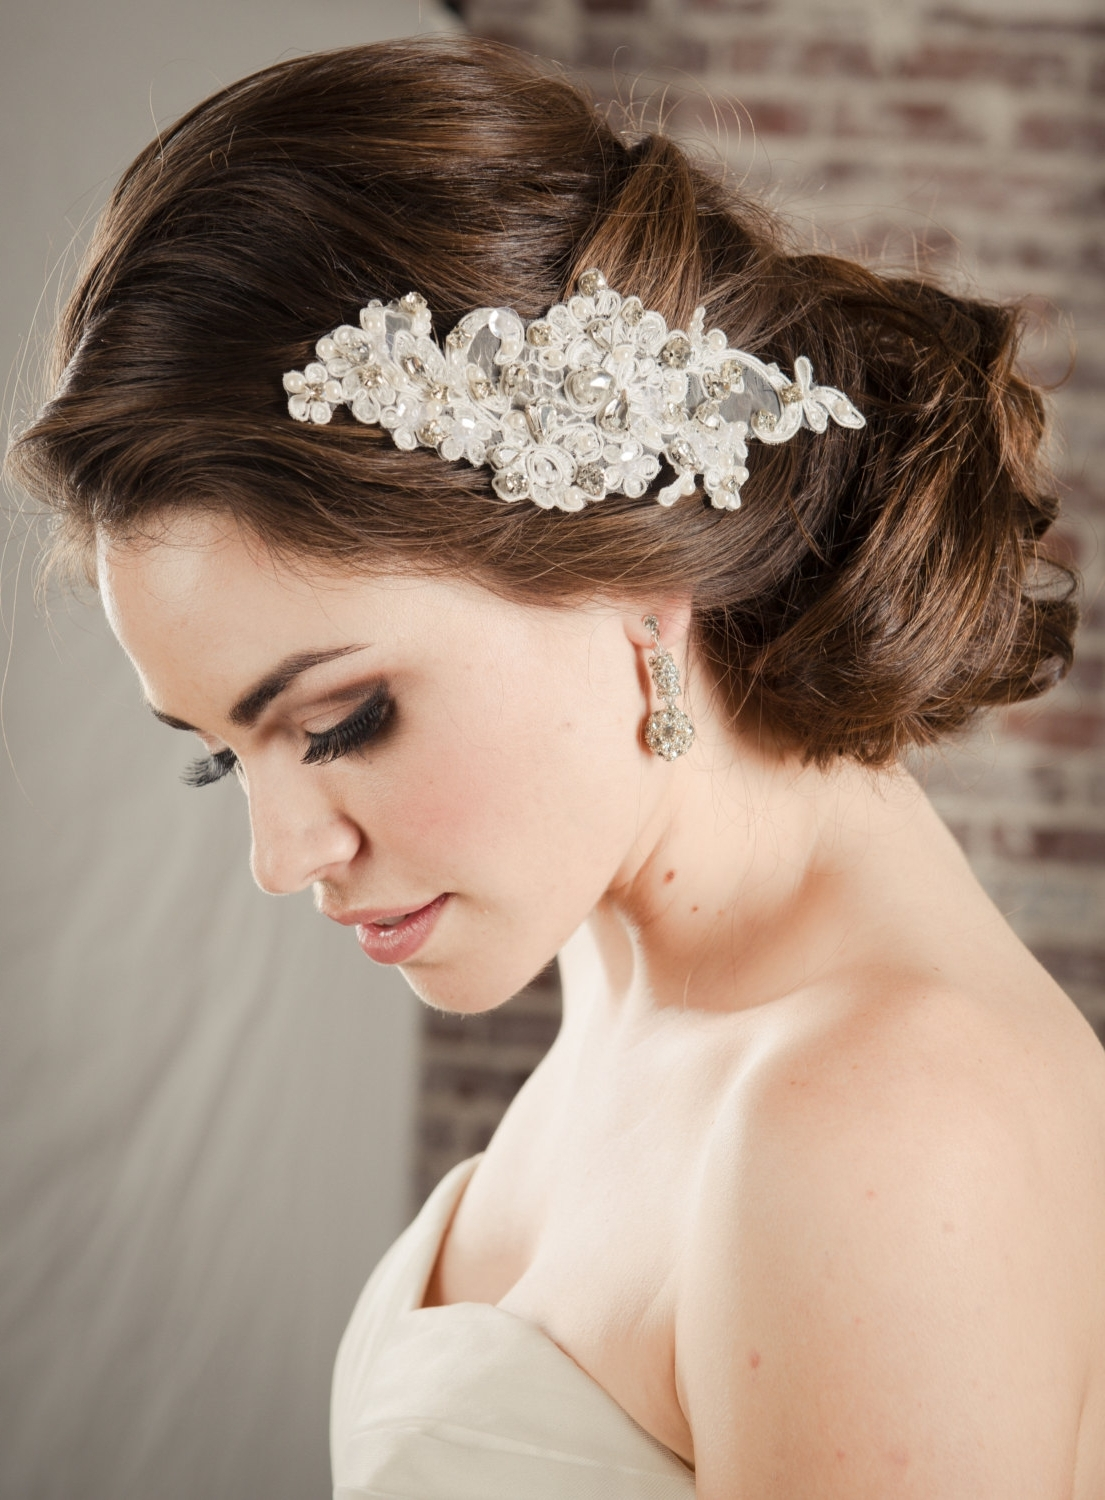 Bridal Hairstyles To Be Stylish – Bridal Hairstyles Ideas Regarding 2017 Wedding Hairstyles With Hair Accessories (View 2 of 15)